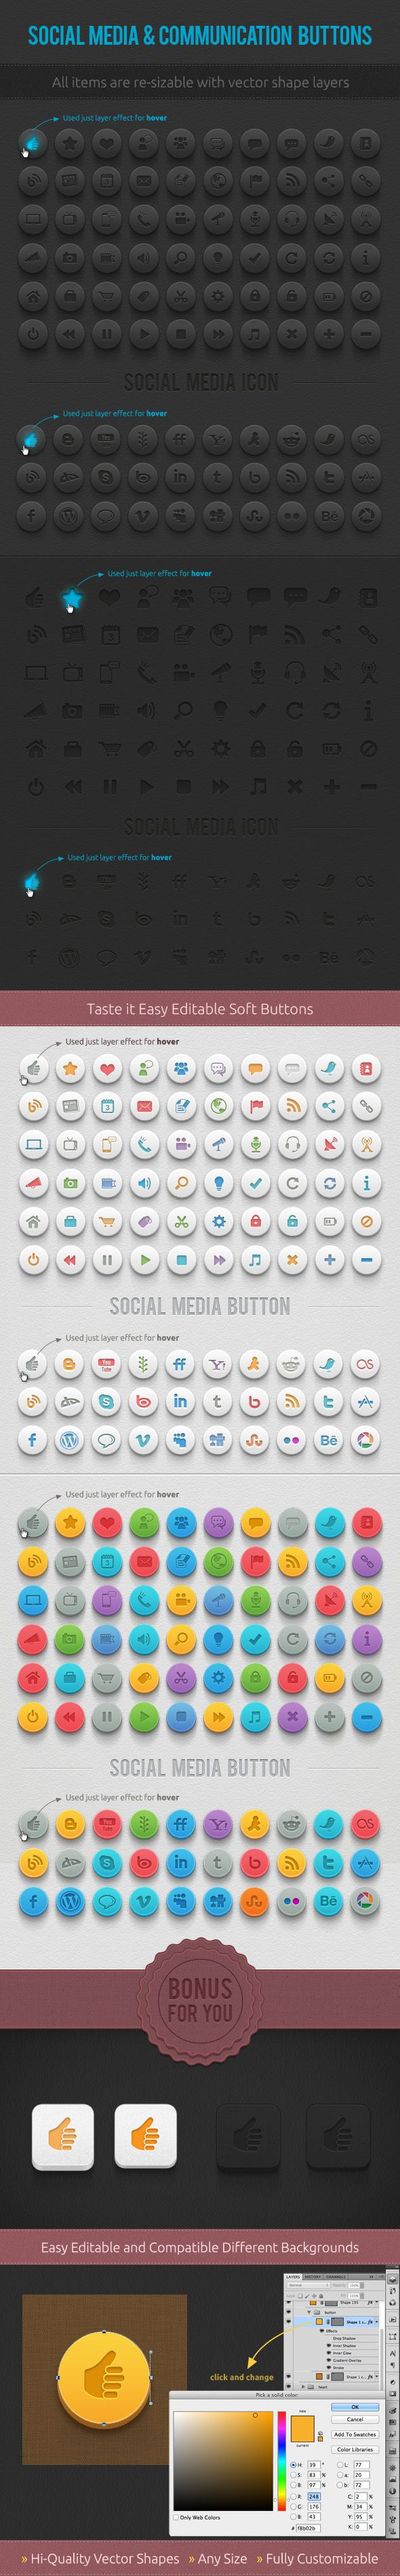 DOWNLOAD PSD: This is a set of 60 communication and 30 social media buttons. There are 360 icons and bonus PSD in 4 different button design!  Very organized name of PSD files, so you can easily change colors or go any size…  Included Files 4 PSD files communication buttons 4 PSD social media buttons 2 Bonus PSD  #UI #UX #PSD #vector #design #web #icons #buttons #social #media #communication #icondesign #socialmedia #free #webdesign